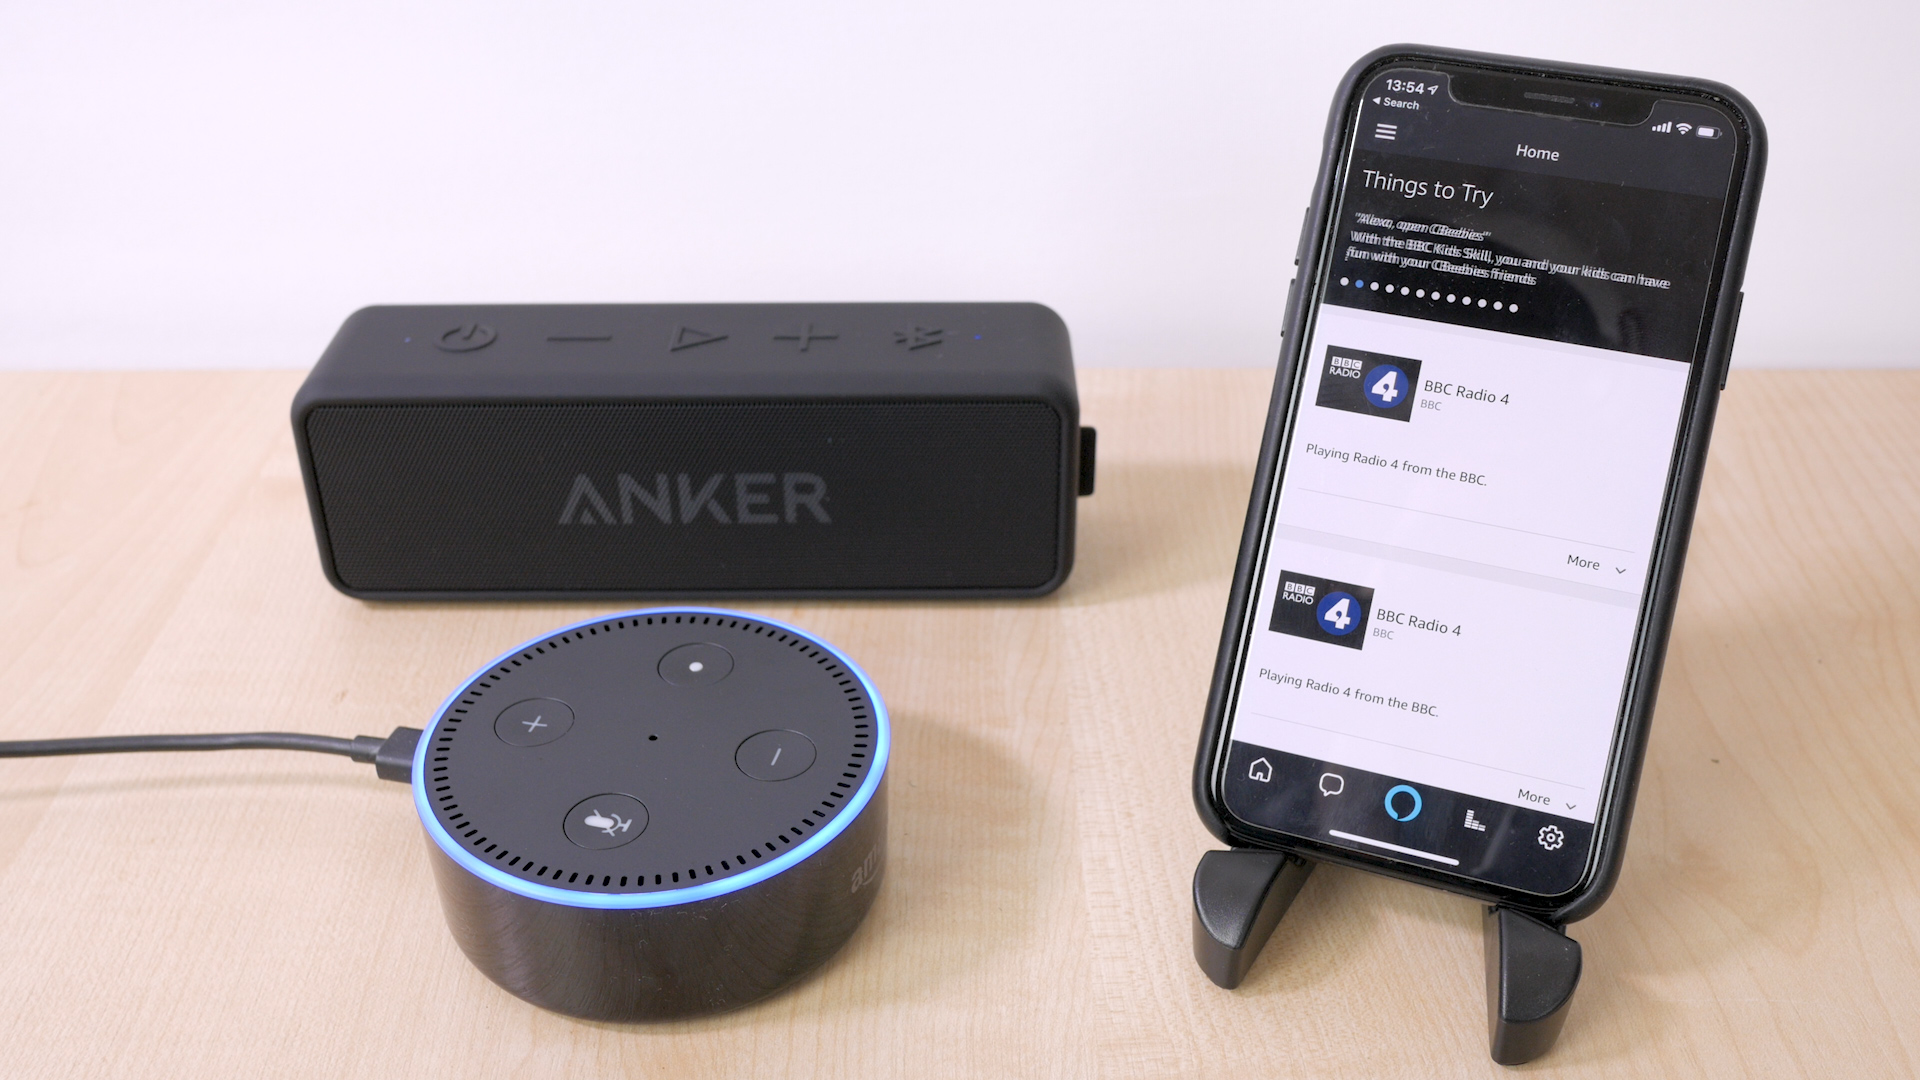 Anker Soundcore 2 Bluetooth Speaker Review Is This The Best Budget A3105011 Paired With An Echo Dot Via